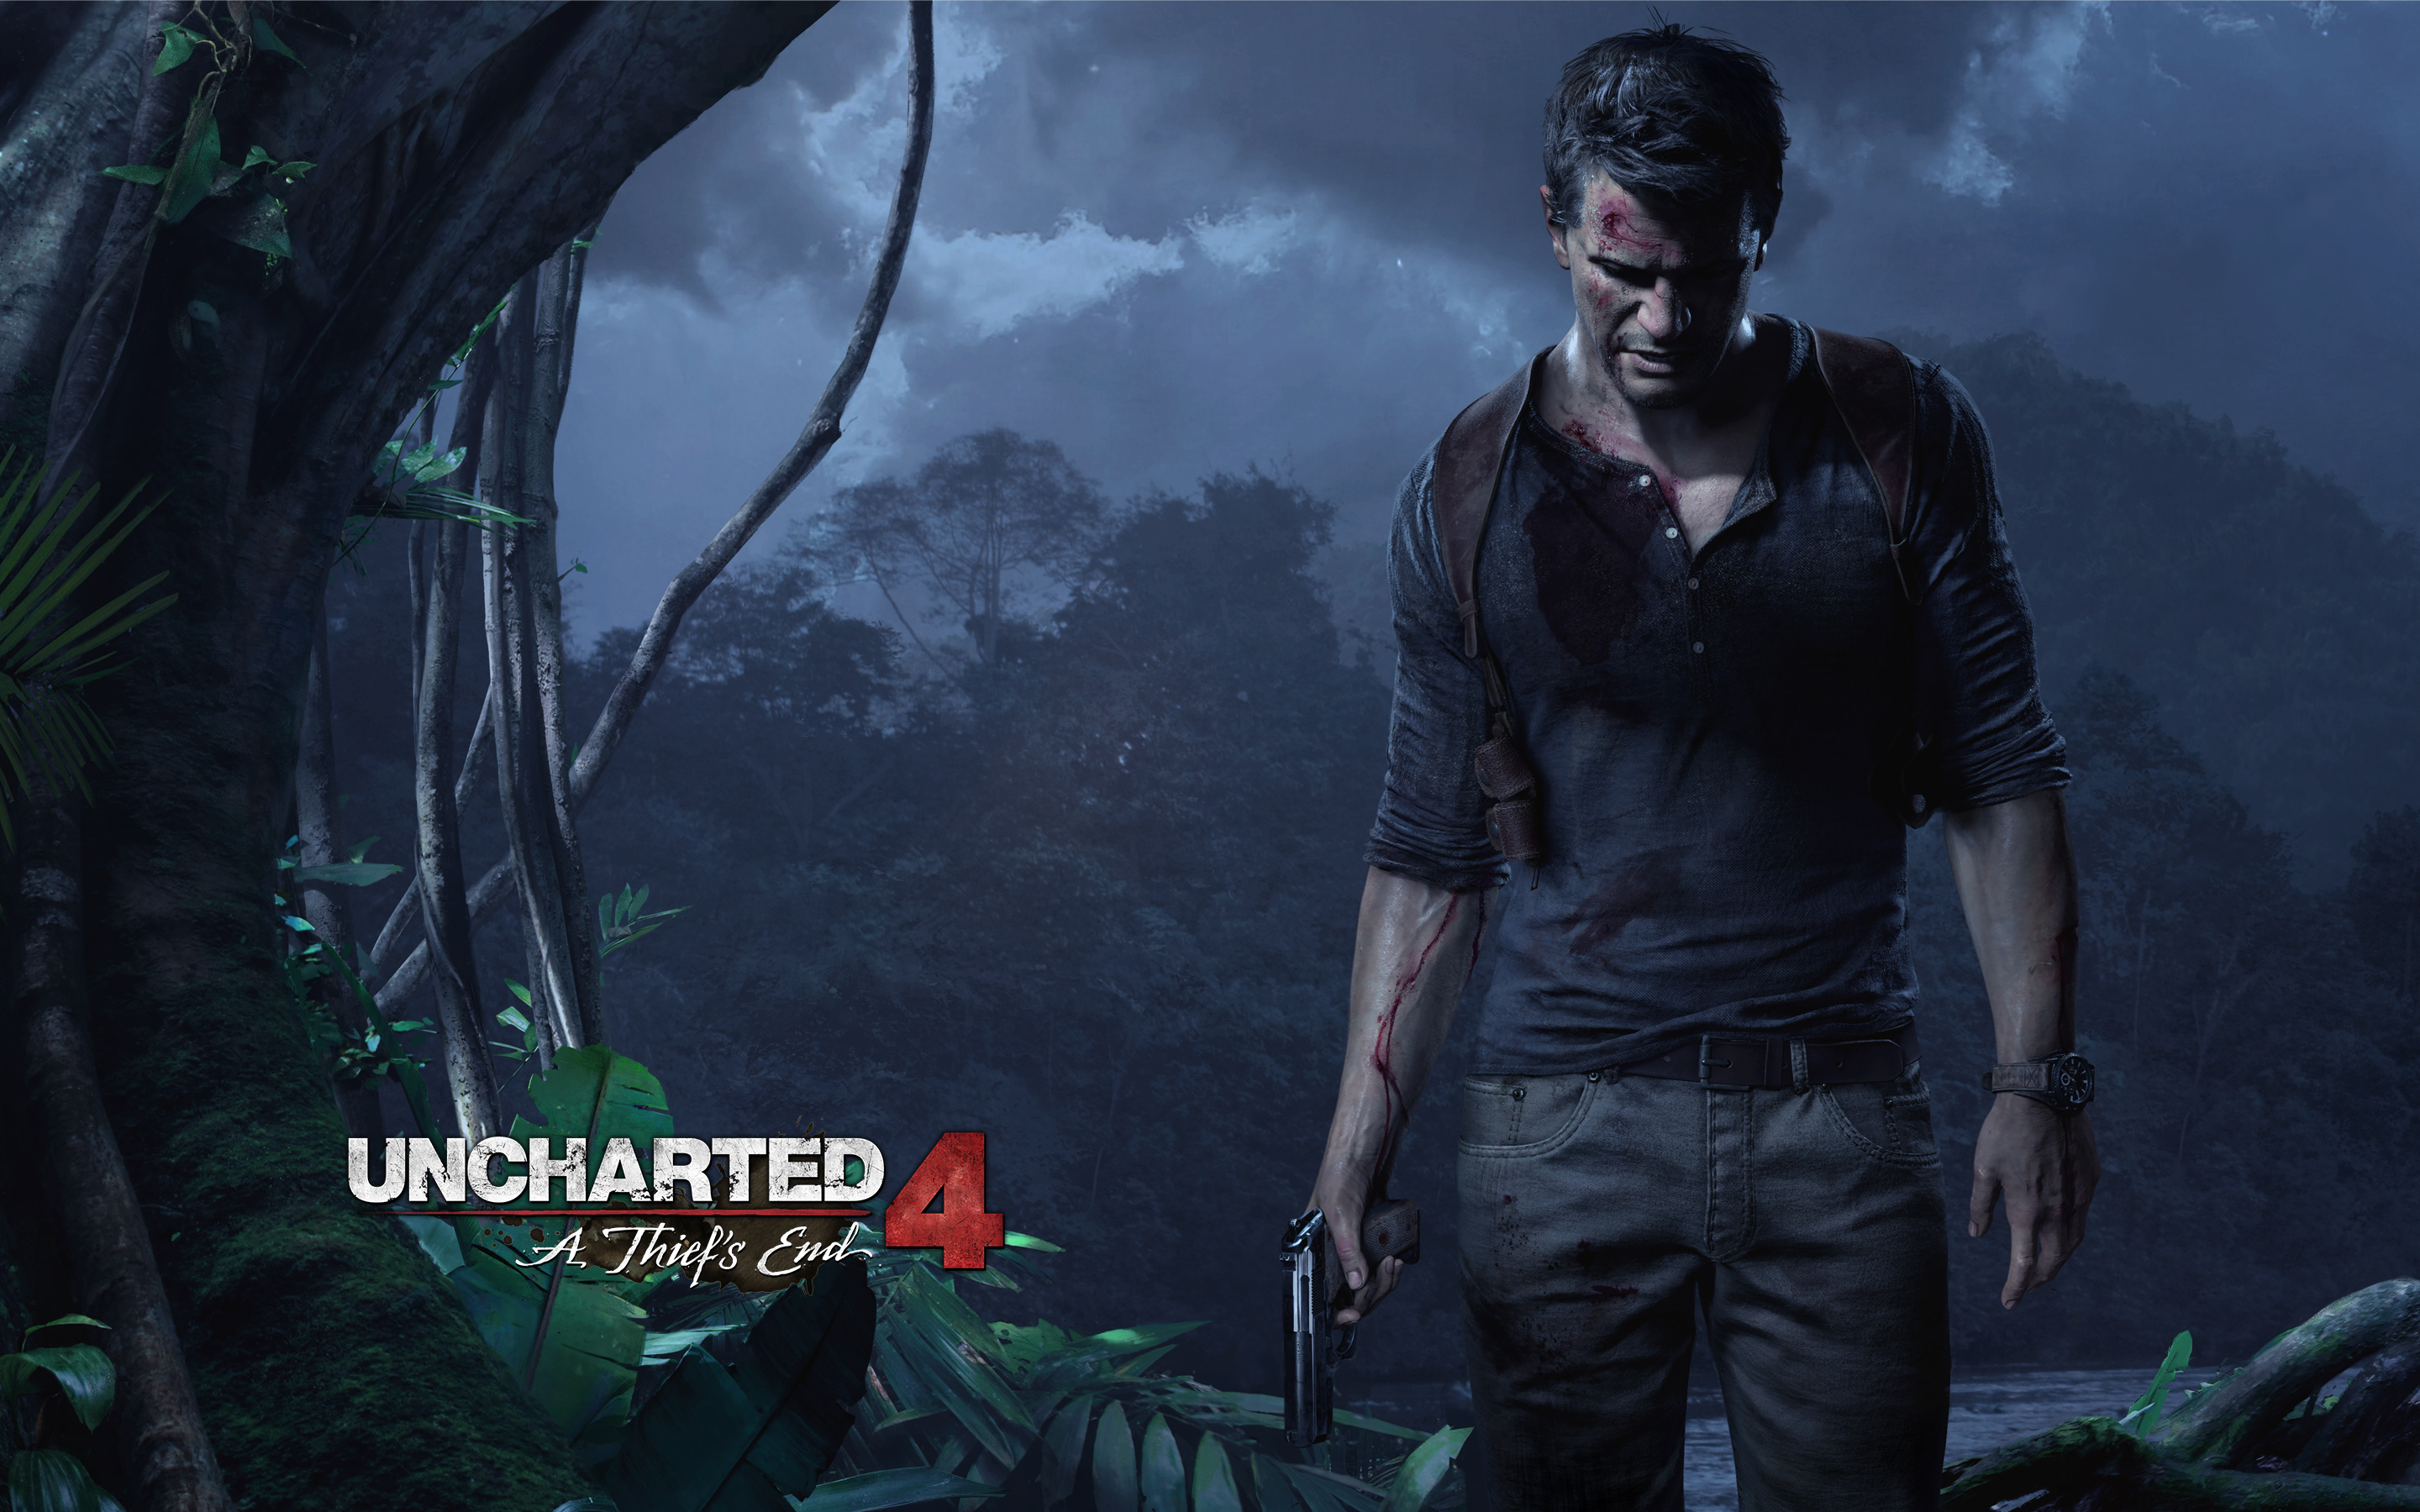 Uncharted 4 A Thief's End Game